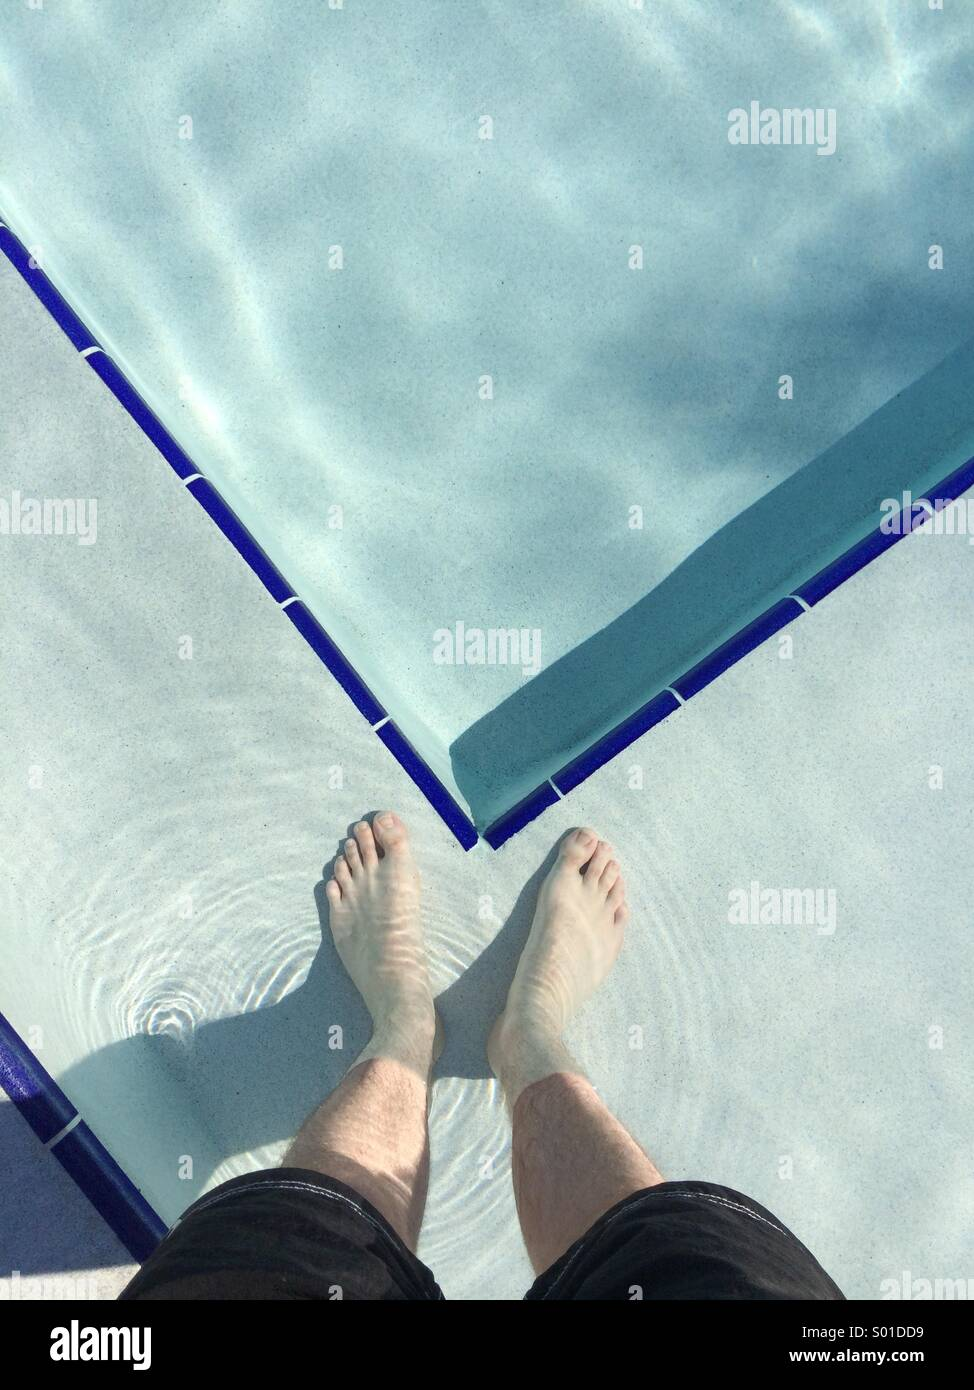 A selfie in a swimming pool. Looking down at a man's feet standing in a pool in Florida, USA. - Stock Image